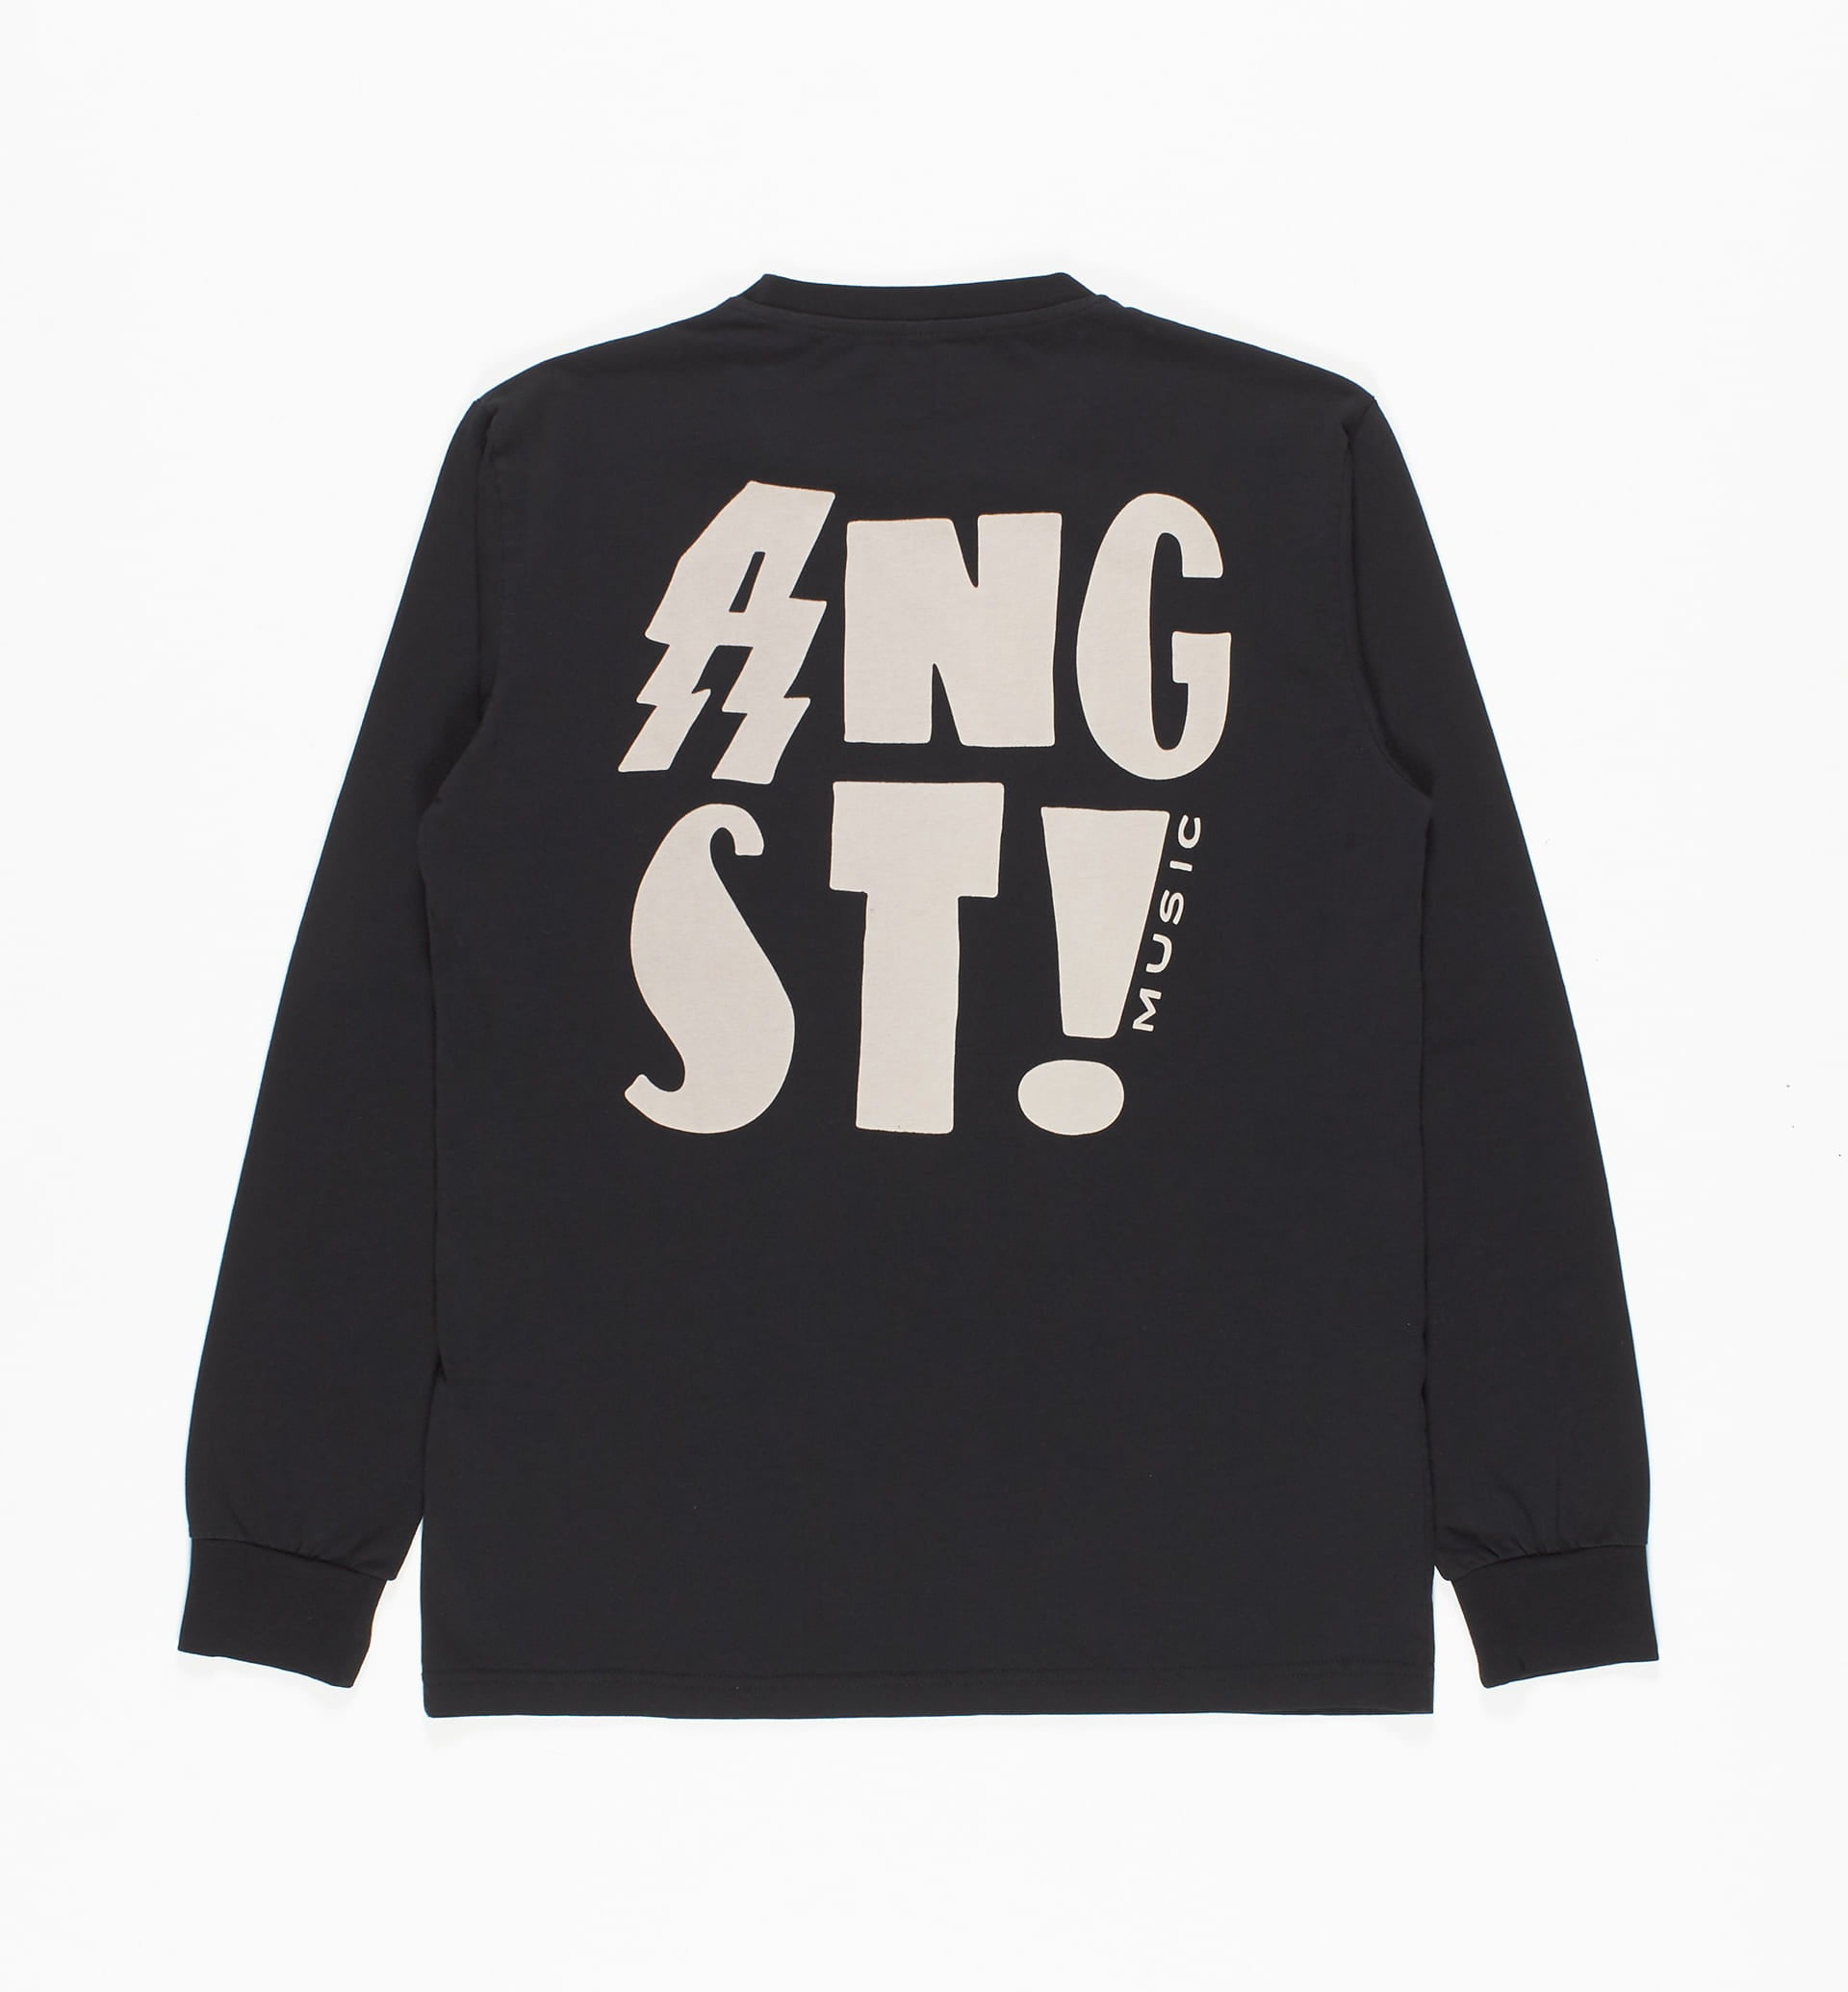 Parra - angst music long sleeve t-shirt